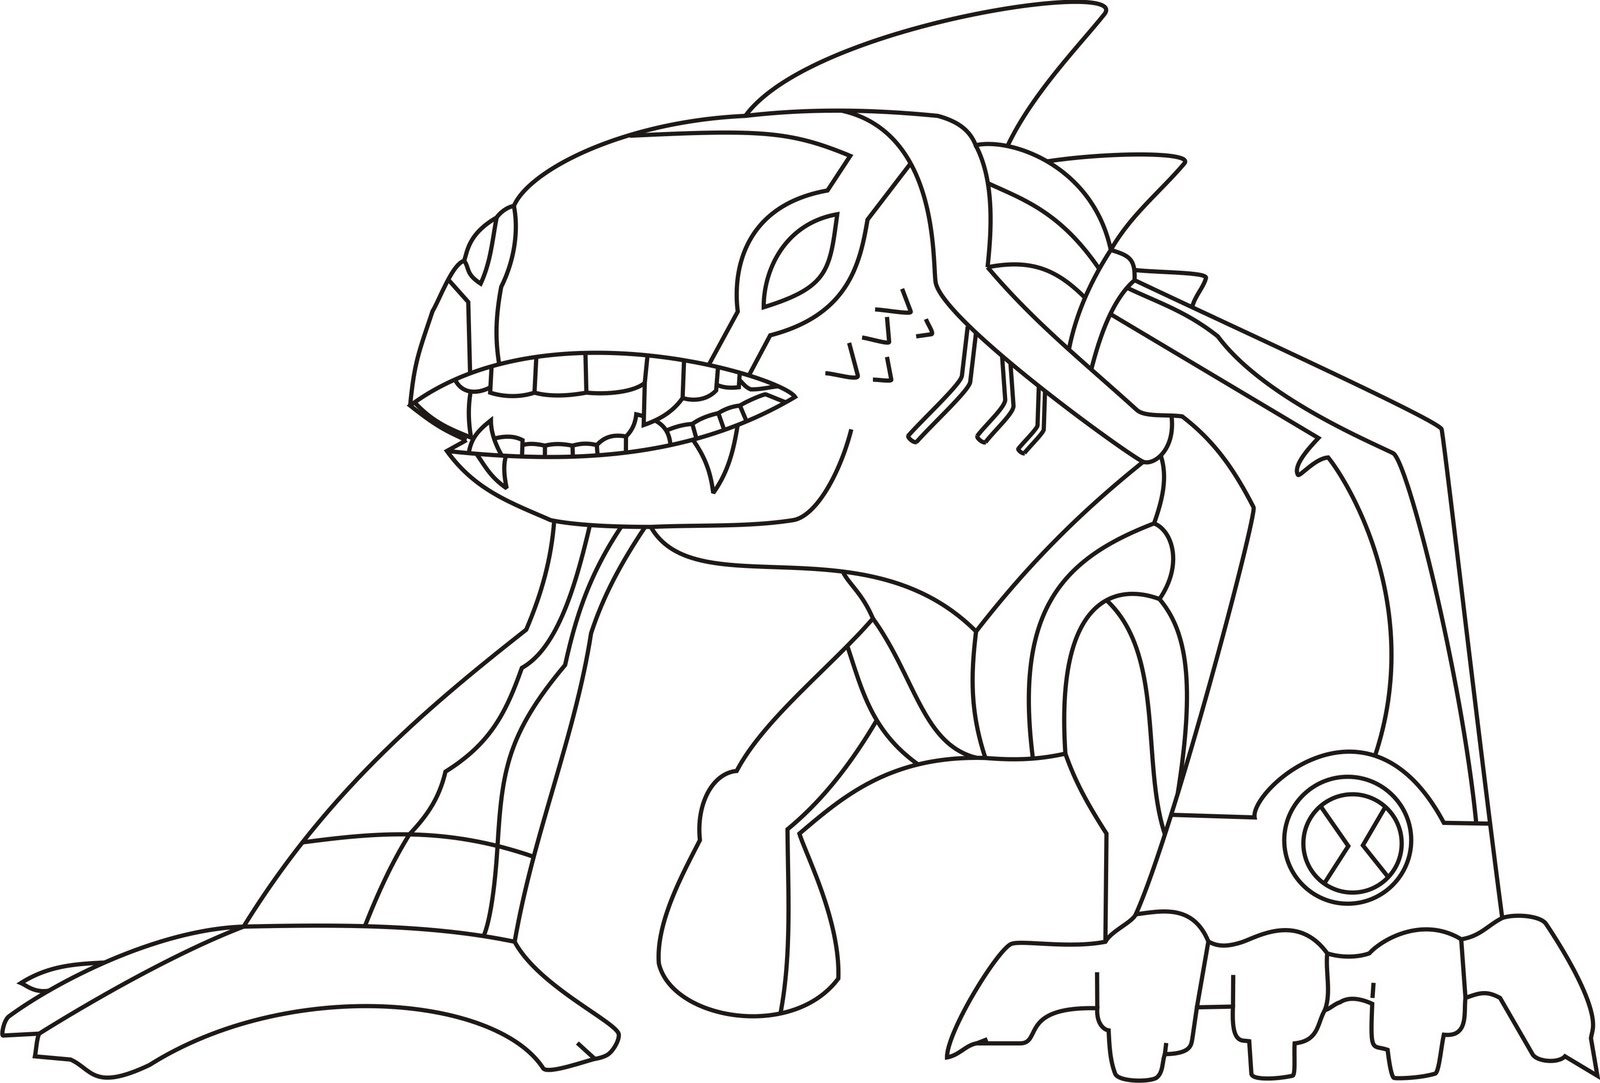 ben ten watch coloring pages - photo#3